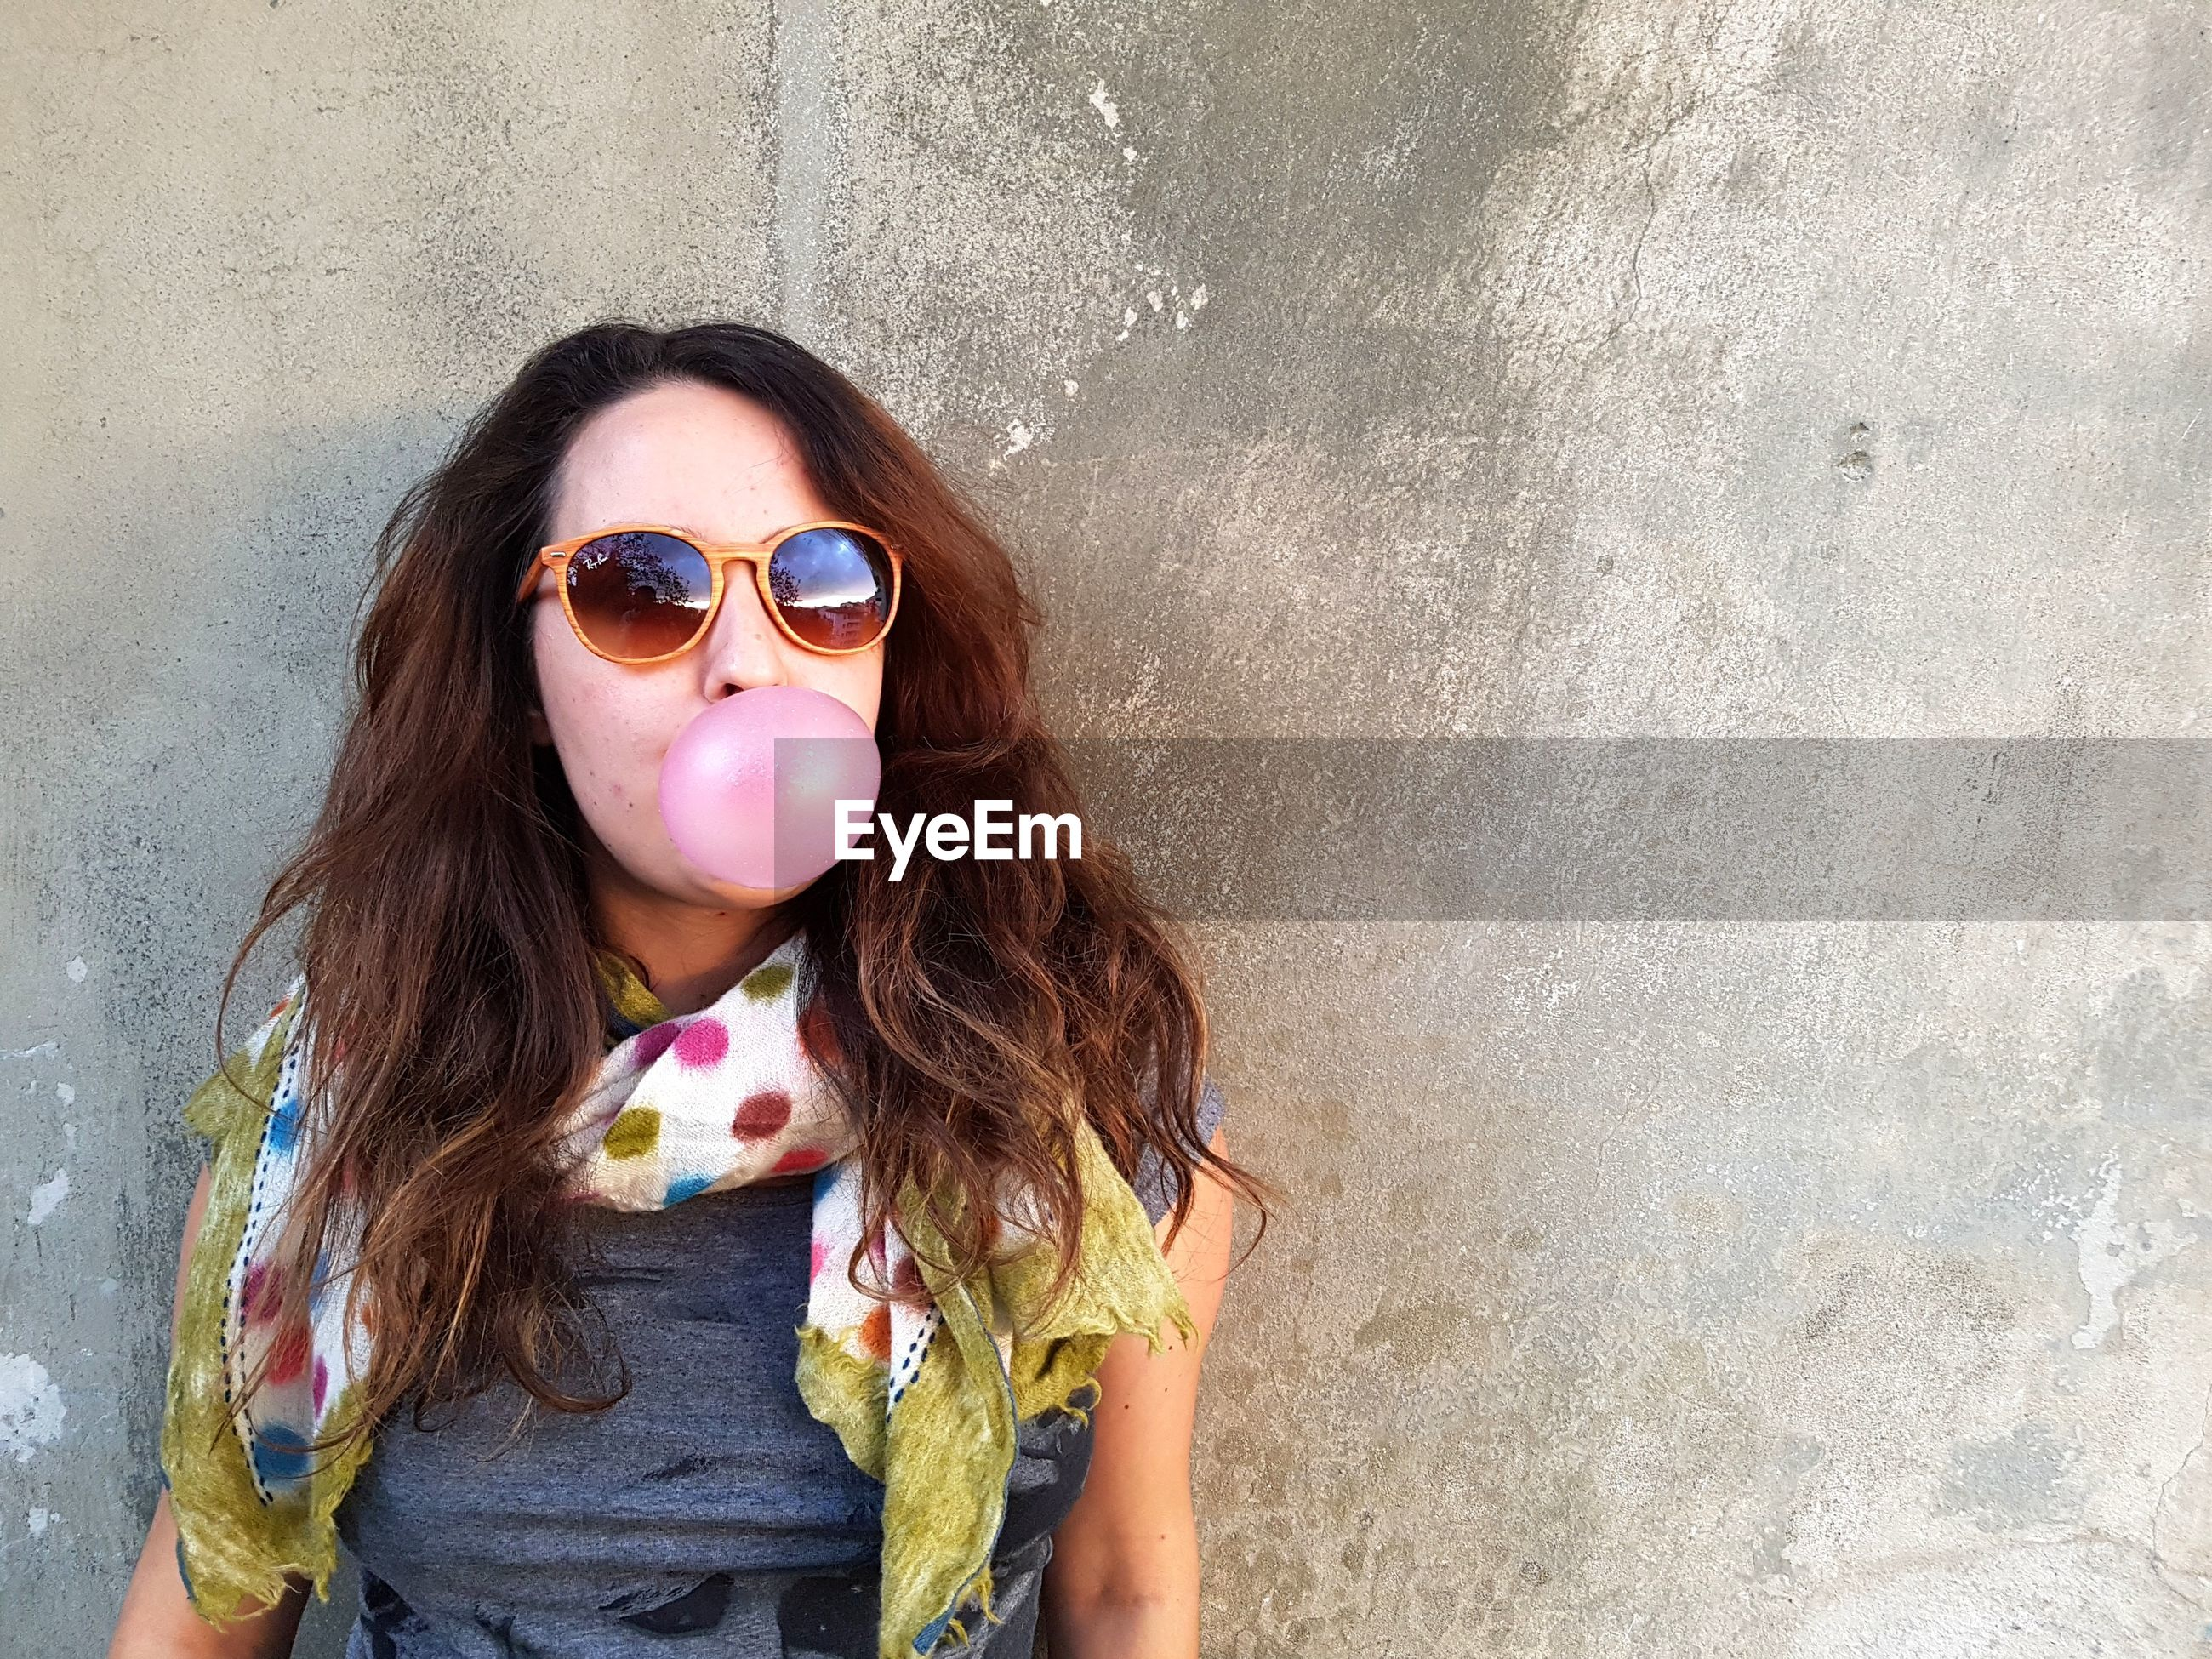 Portrait of woman in sunglasses blowing bubble gum against wall